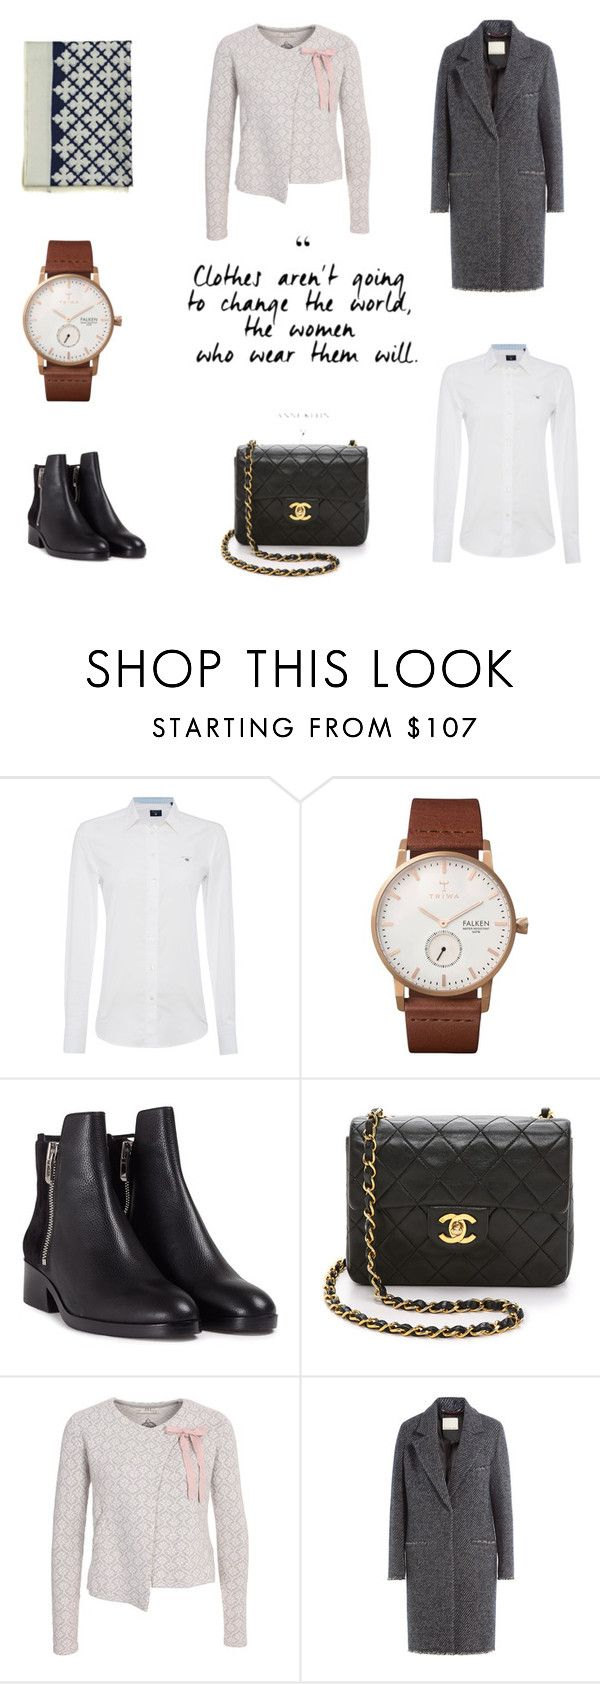 """""""Change the world"""" by majahellstrom on Polyvore featuring By Malene Birger, GANT, Triwa, 3.1 Phillip Lim, Chanel and Odd Molly"""